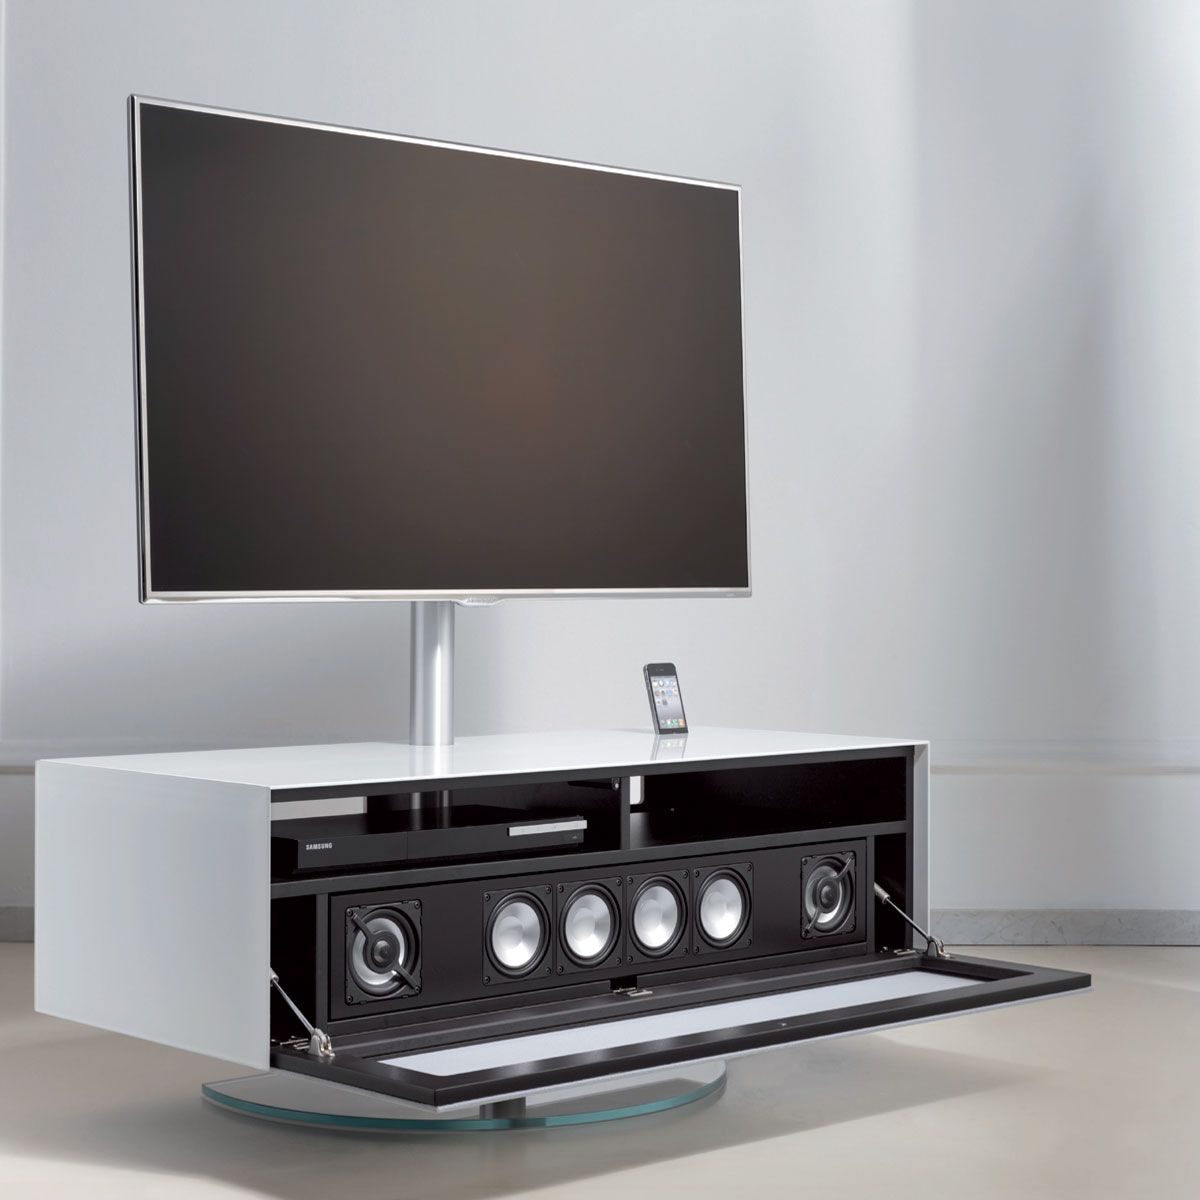 spectral m bel archive seite 2 von 4 tv m bel und hifi m bel guide. Black Bedroom Furniture Sets. Home Design Ideas